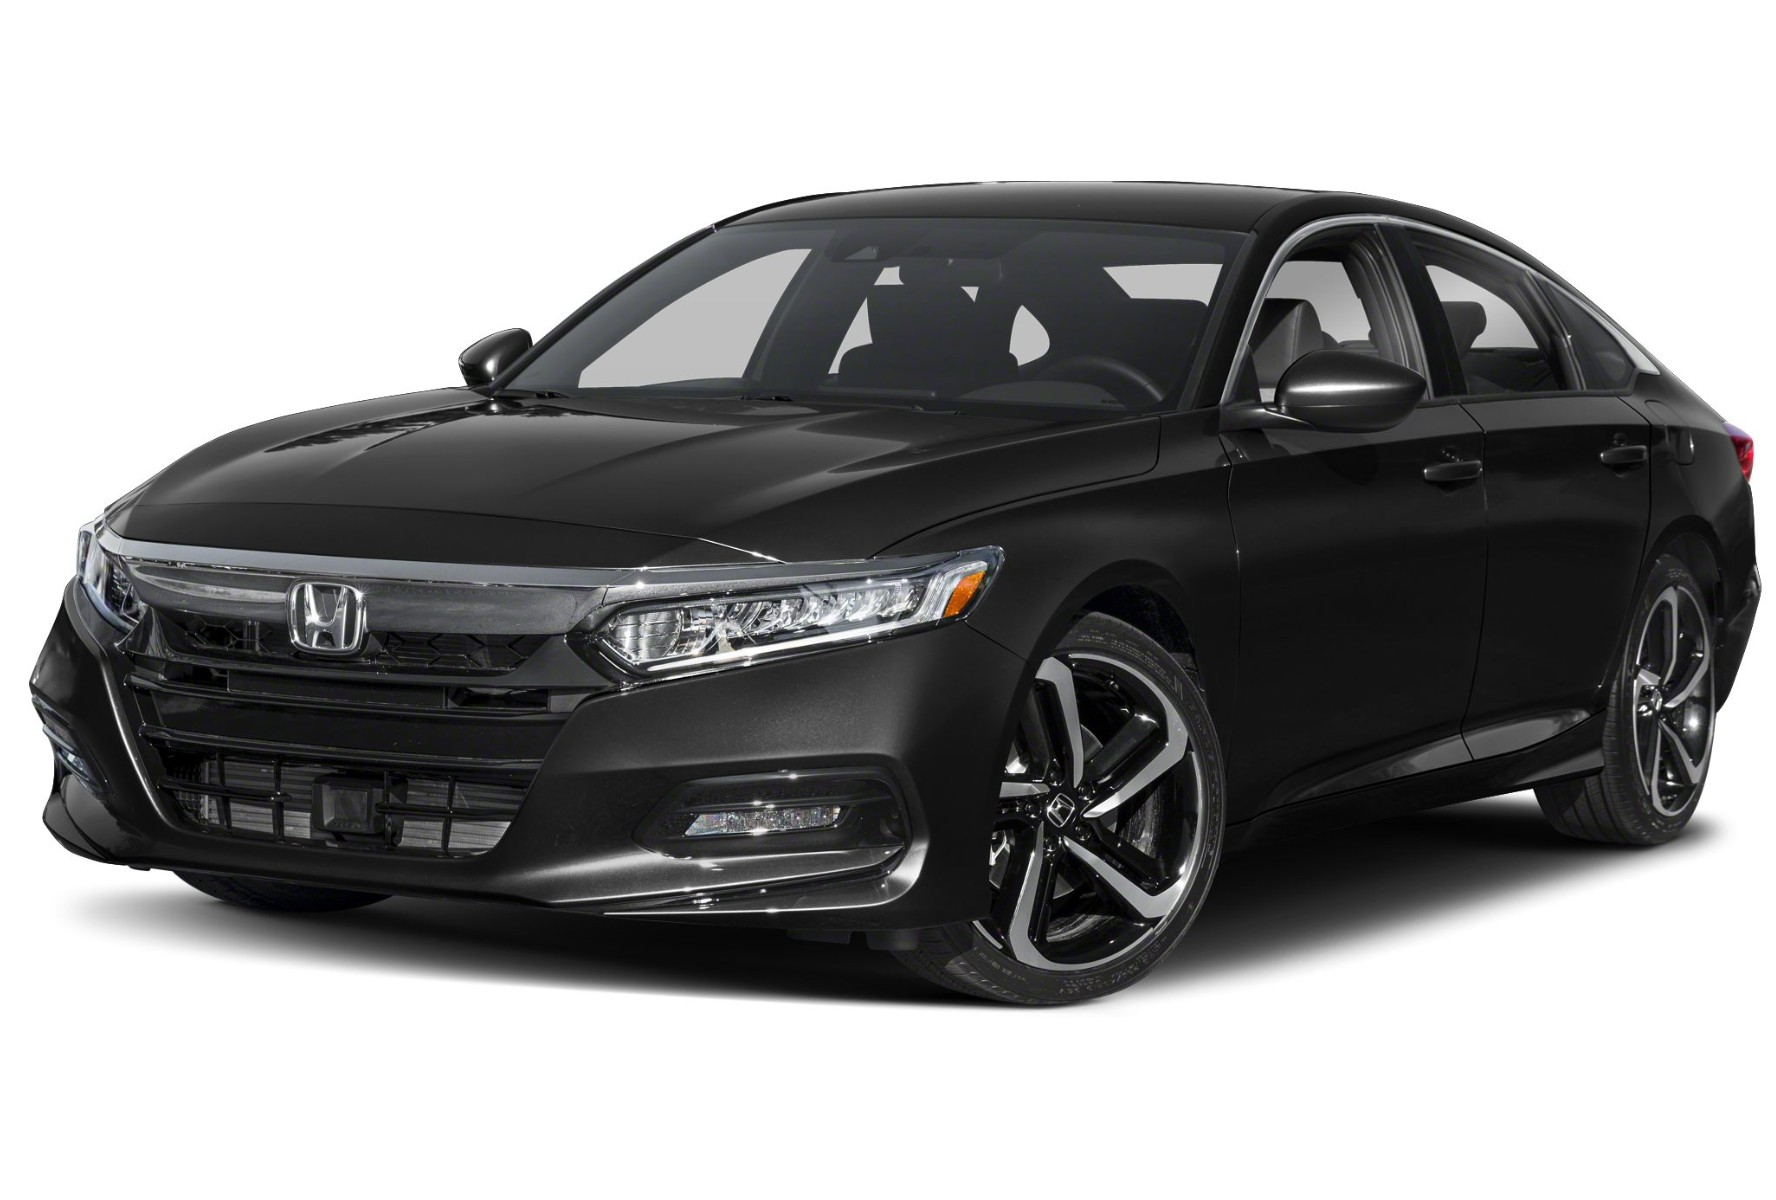 The 2019 Honda Accord Sport for sale at Headquarter Honda in Clermont, FL